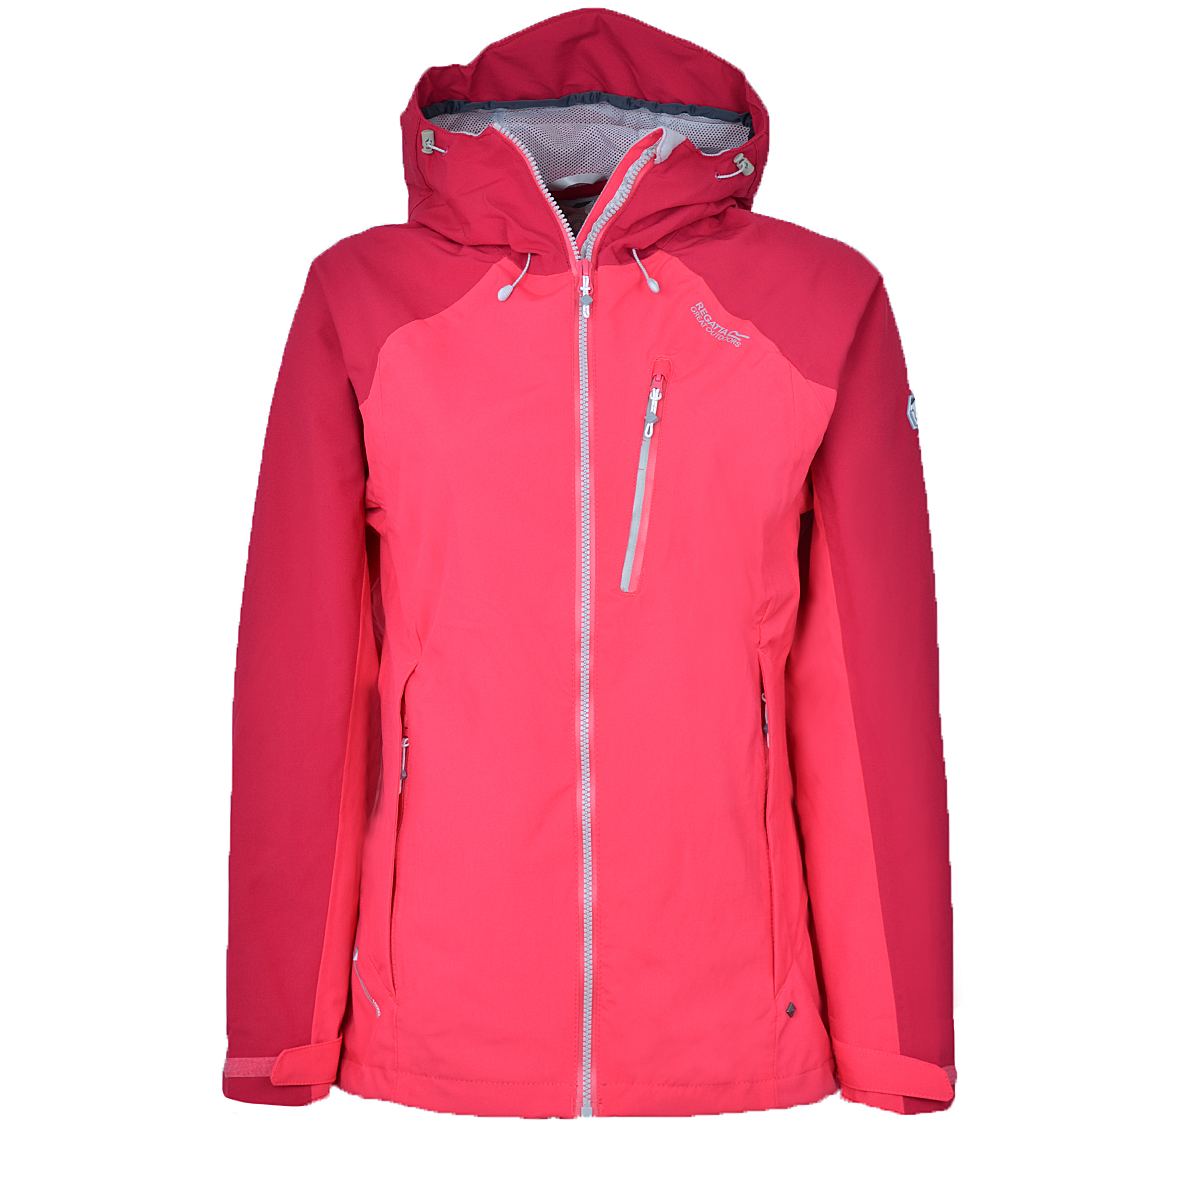 Outdoorjacke damen regatta